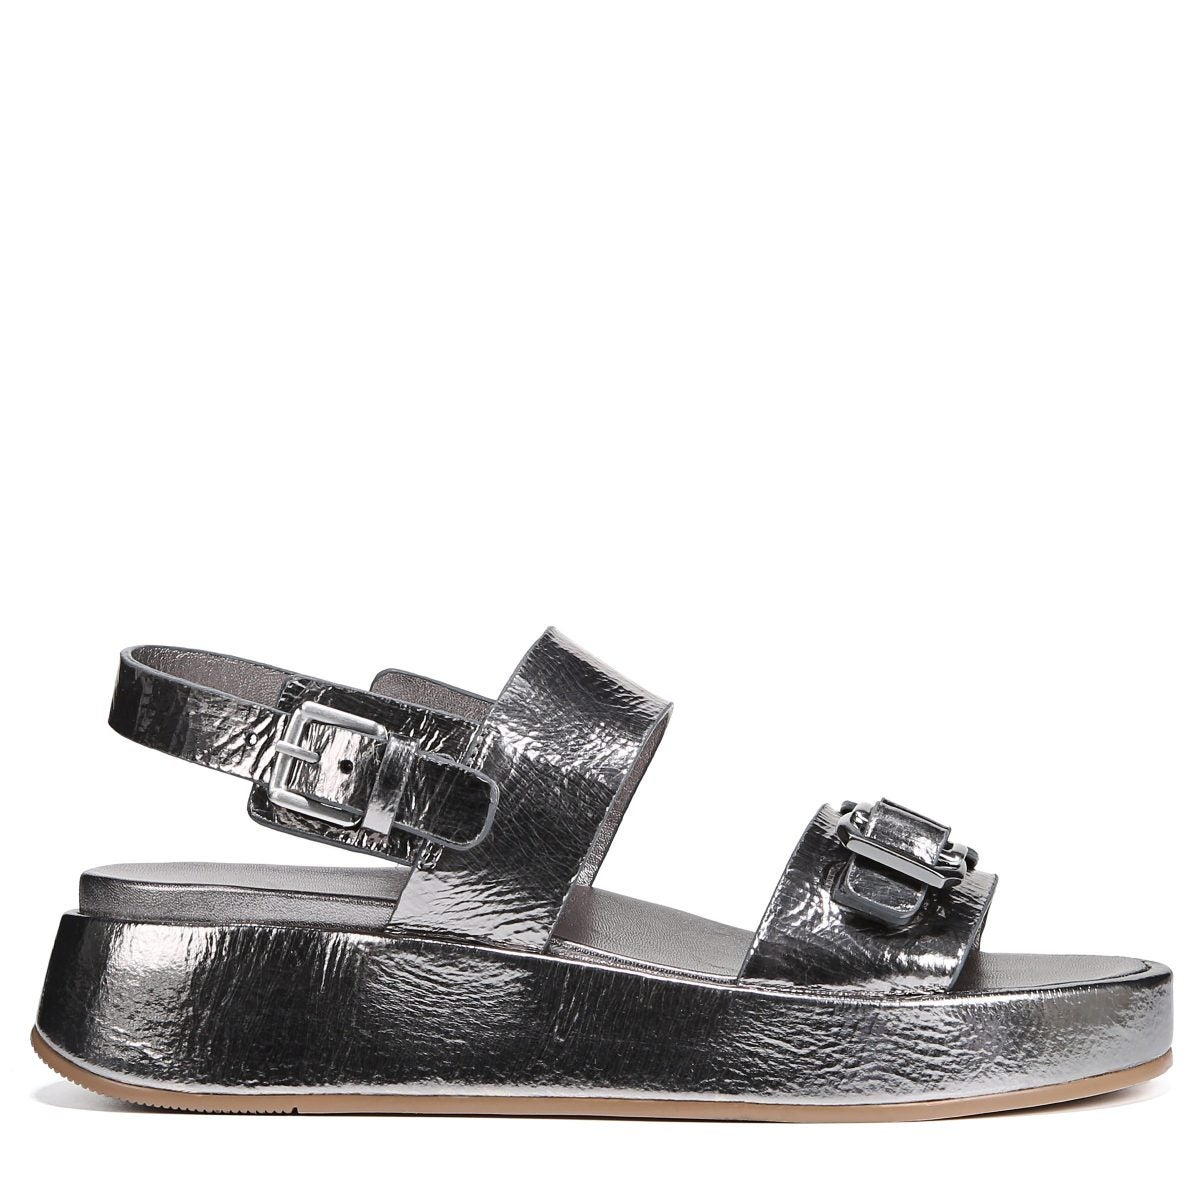 These Are The 8 Best Sandals For Summer 2021